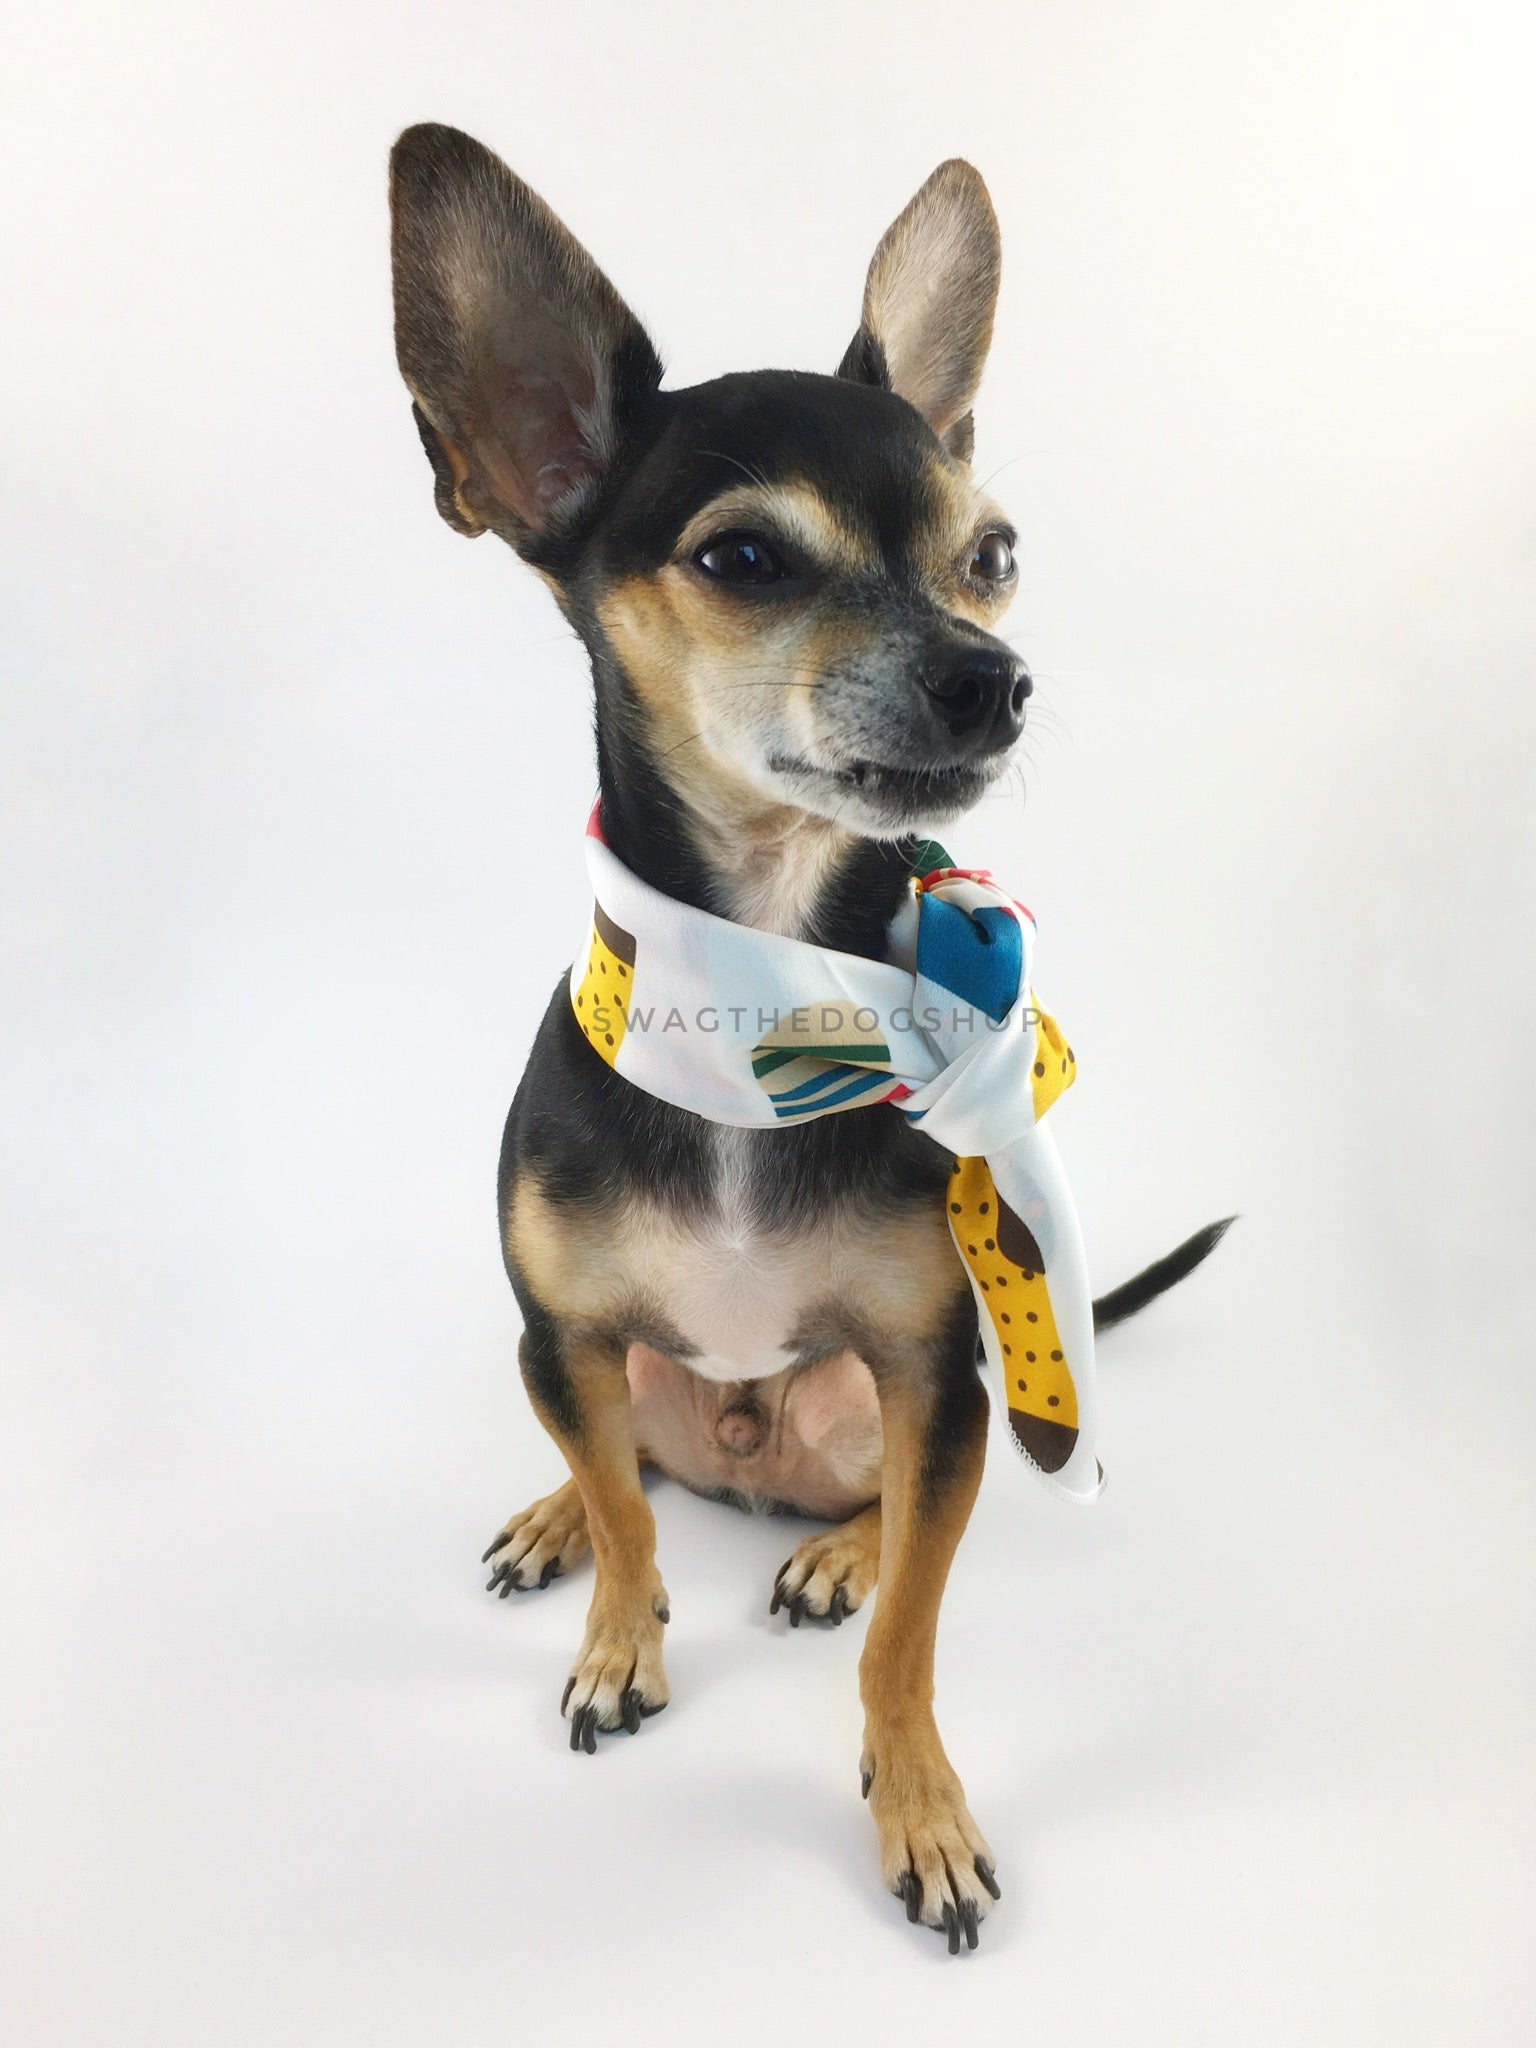 Rock Your Socks Swagdana Scarf - Full Frontal View of Cute Chihuahua Wearing Swagdana Scarf as Neckerchief. Dog Bandana. Dog Scarf.